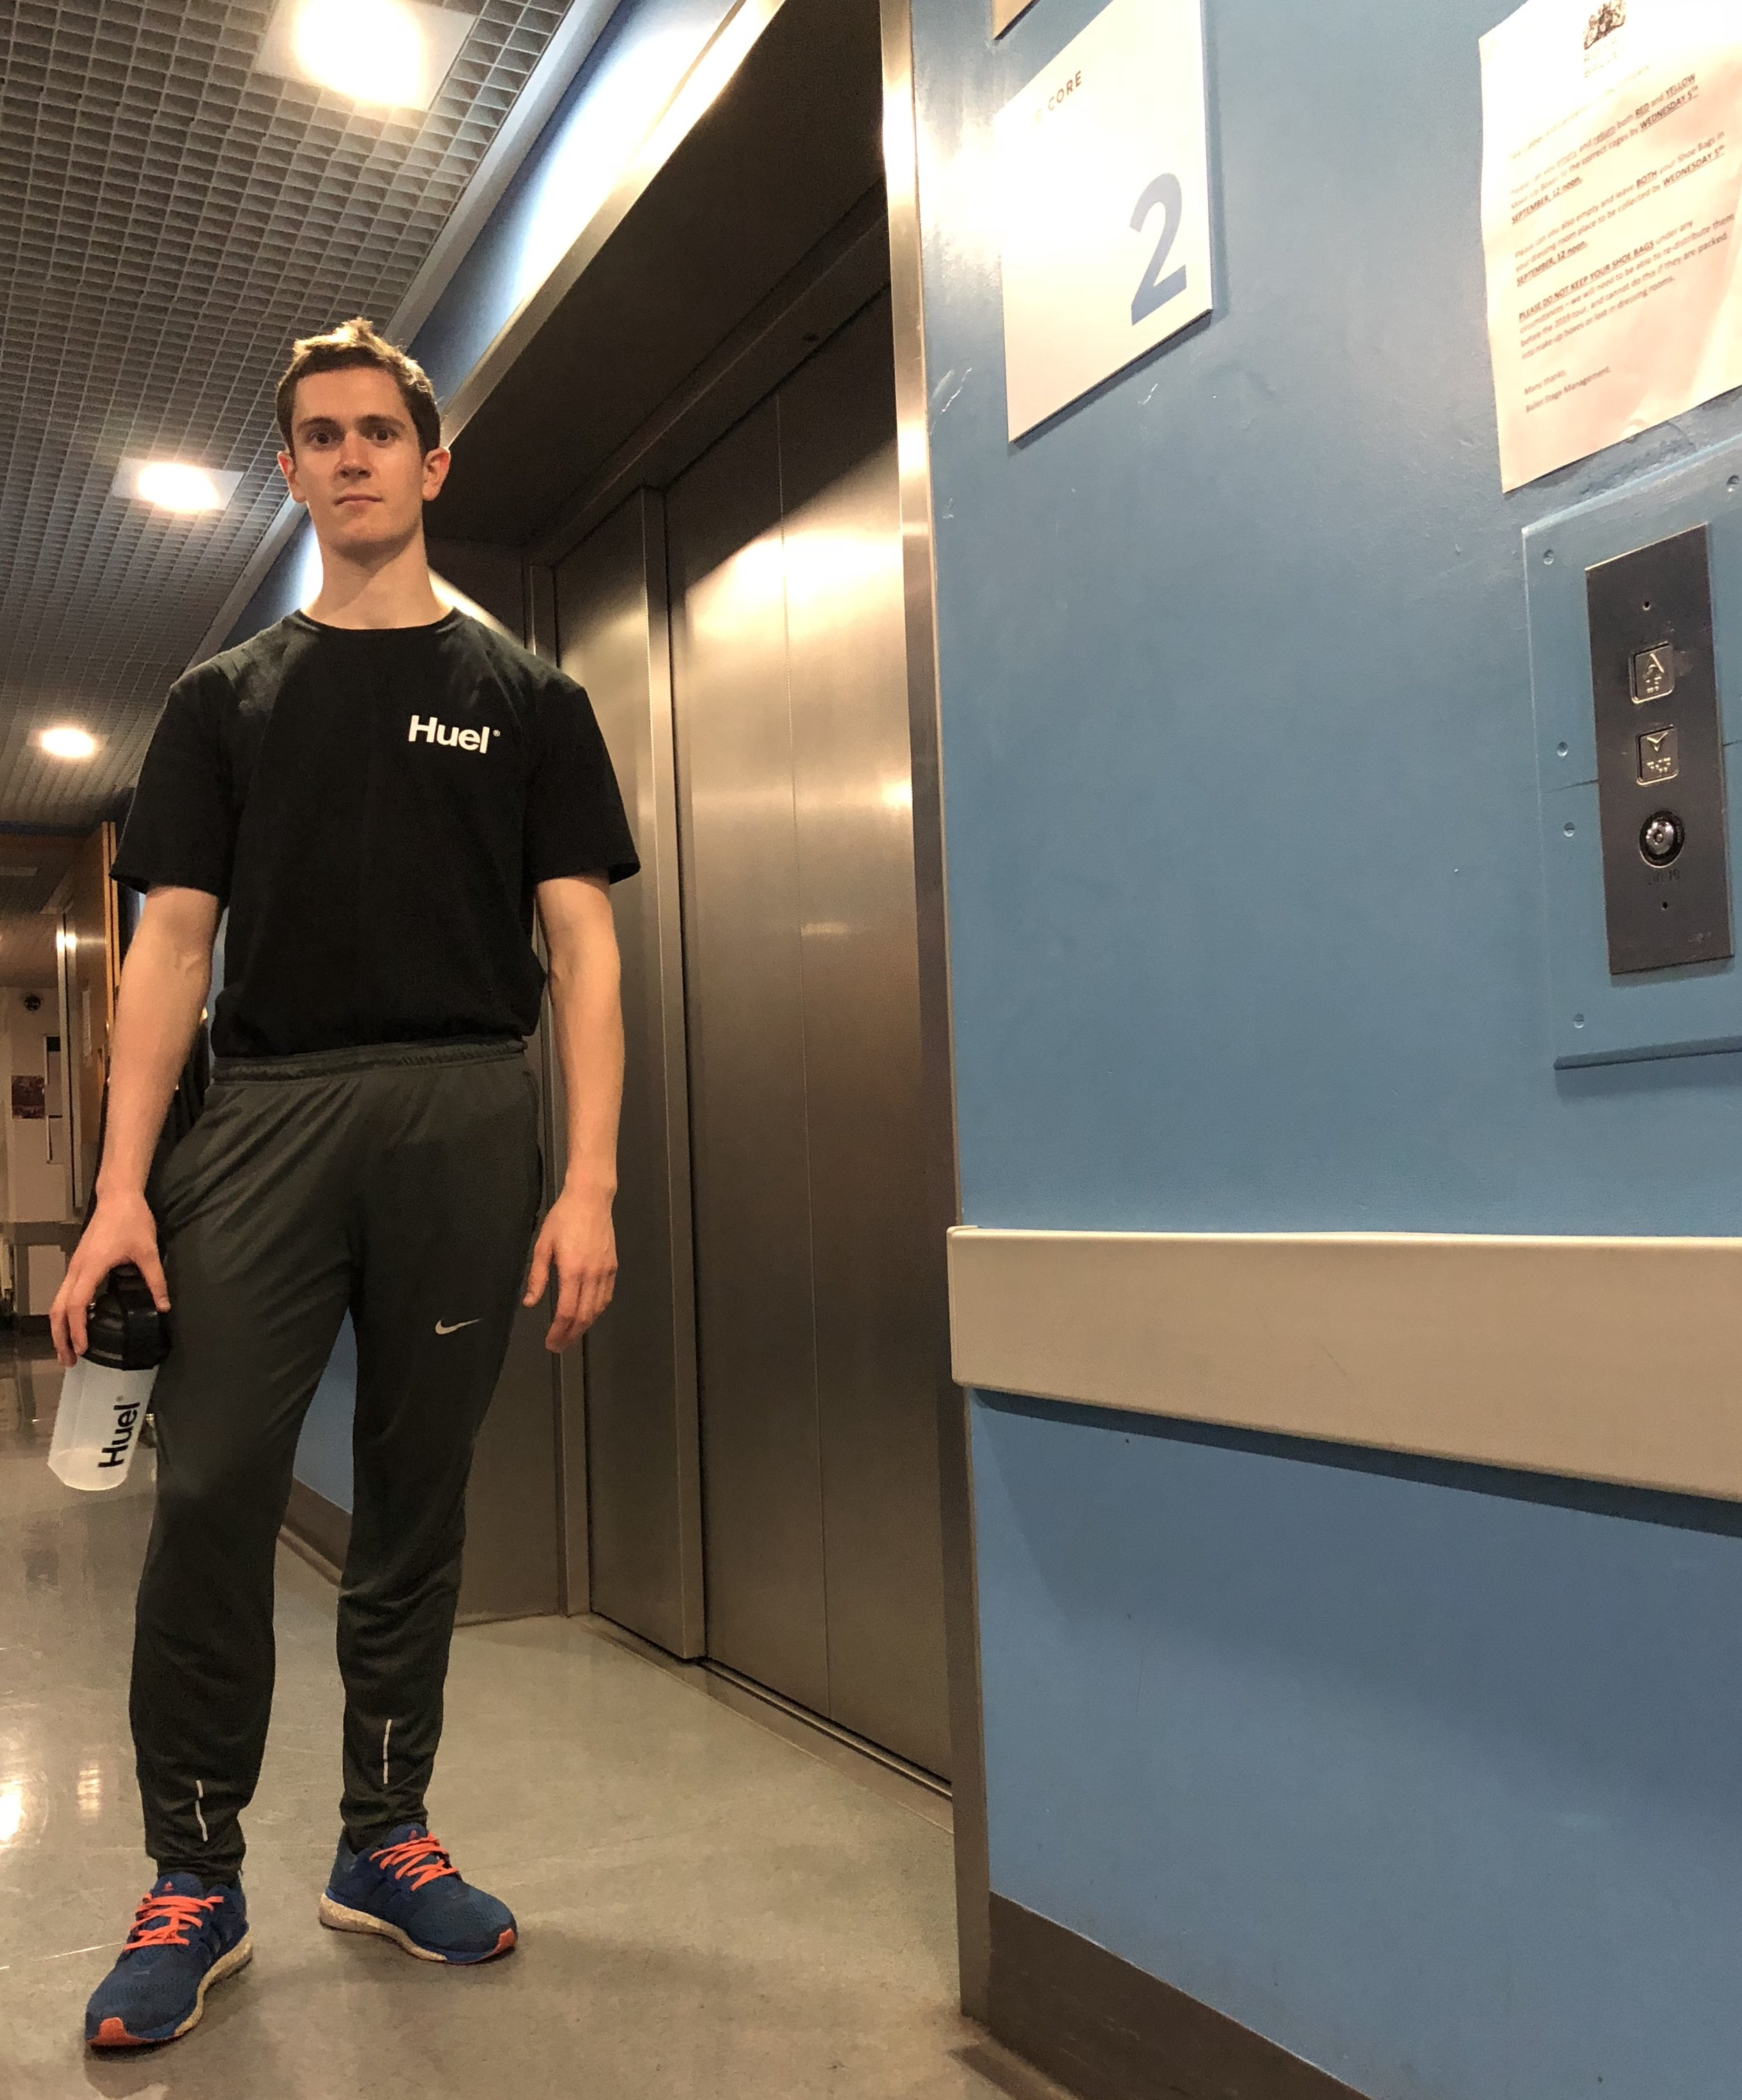 Caught Billy at the elevator with the full  Huel kit on !